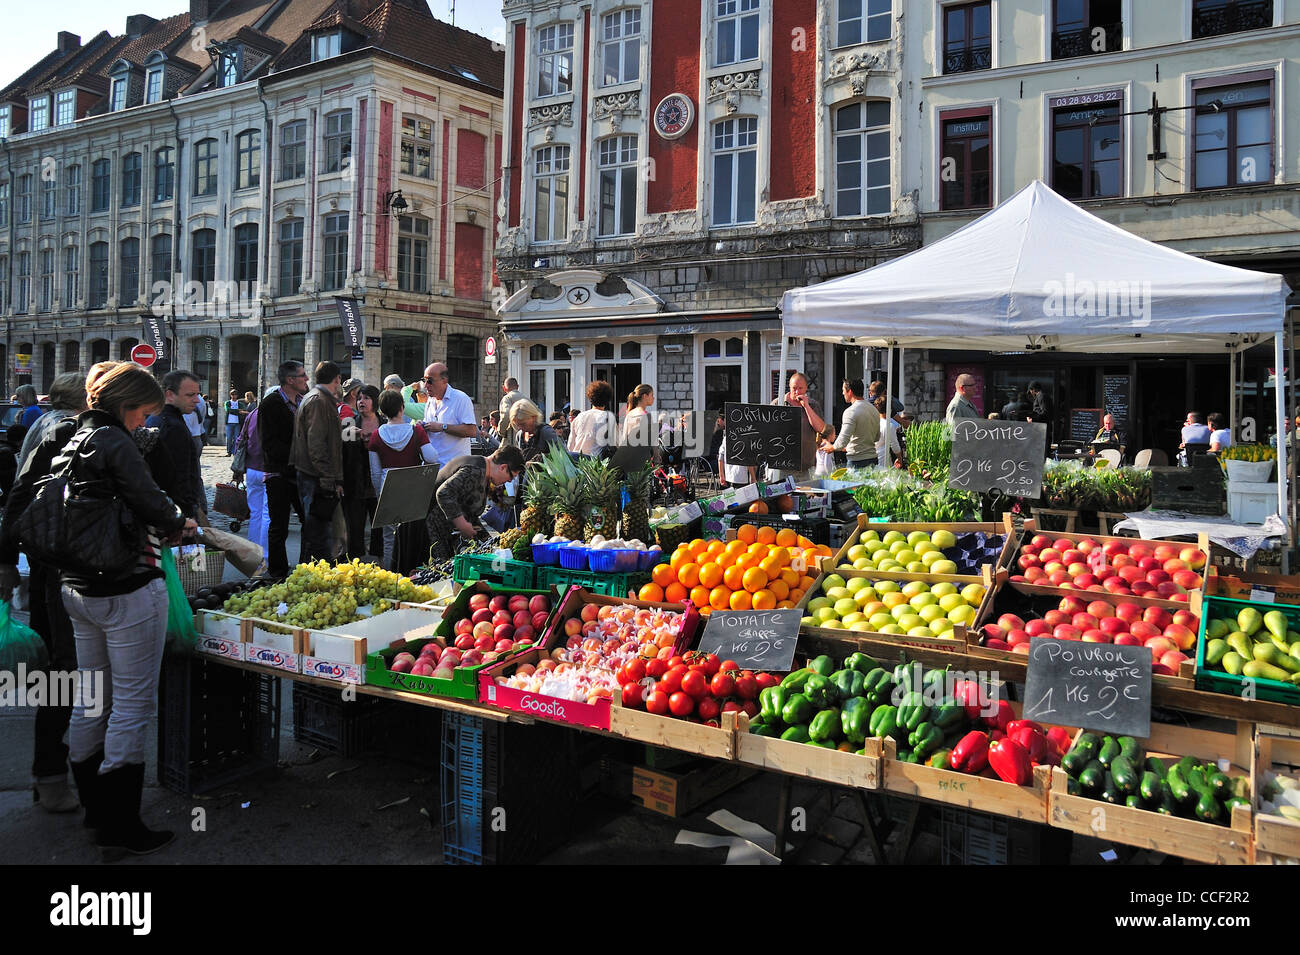 Customers buying fruit and vegetables at market stall, Lille, France - Stock Image